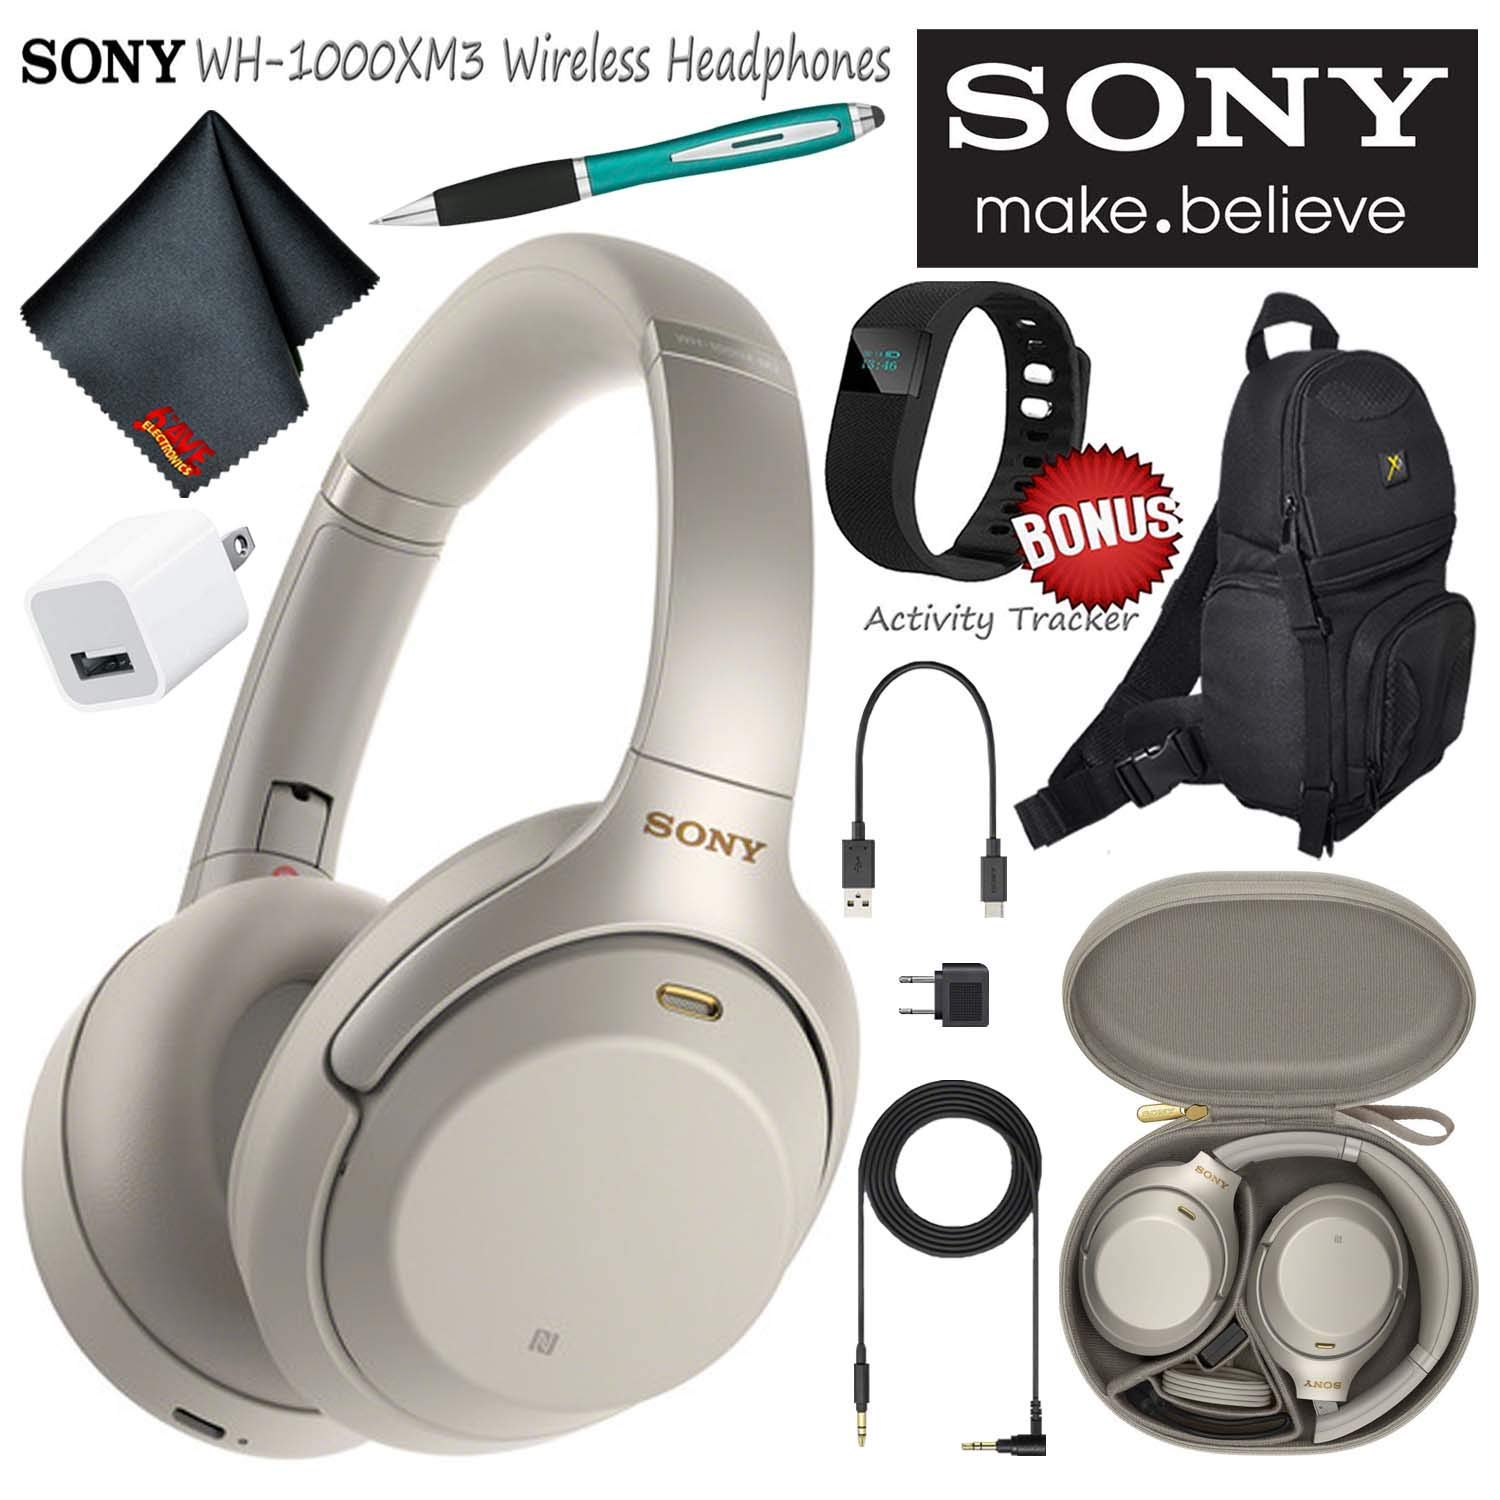 Sony WH-1000XM3S Wireless Bluetooth Noise-Canceling Over-Ear Headphones (Silver) Essential Commuter Bundle Kit with Sling Backpack + Stylus + More